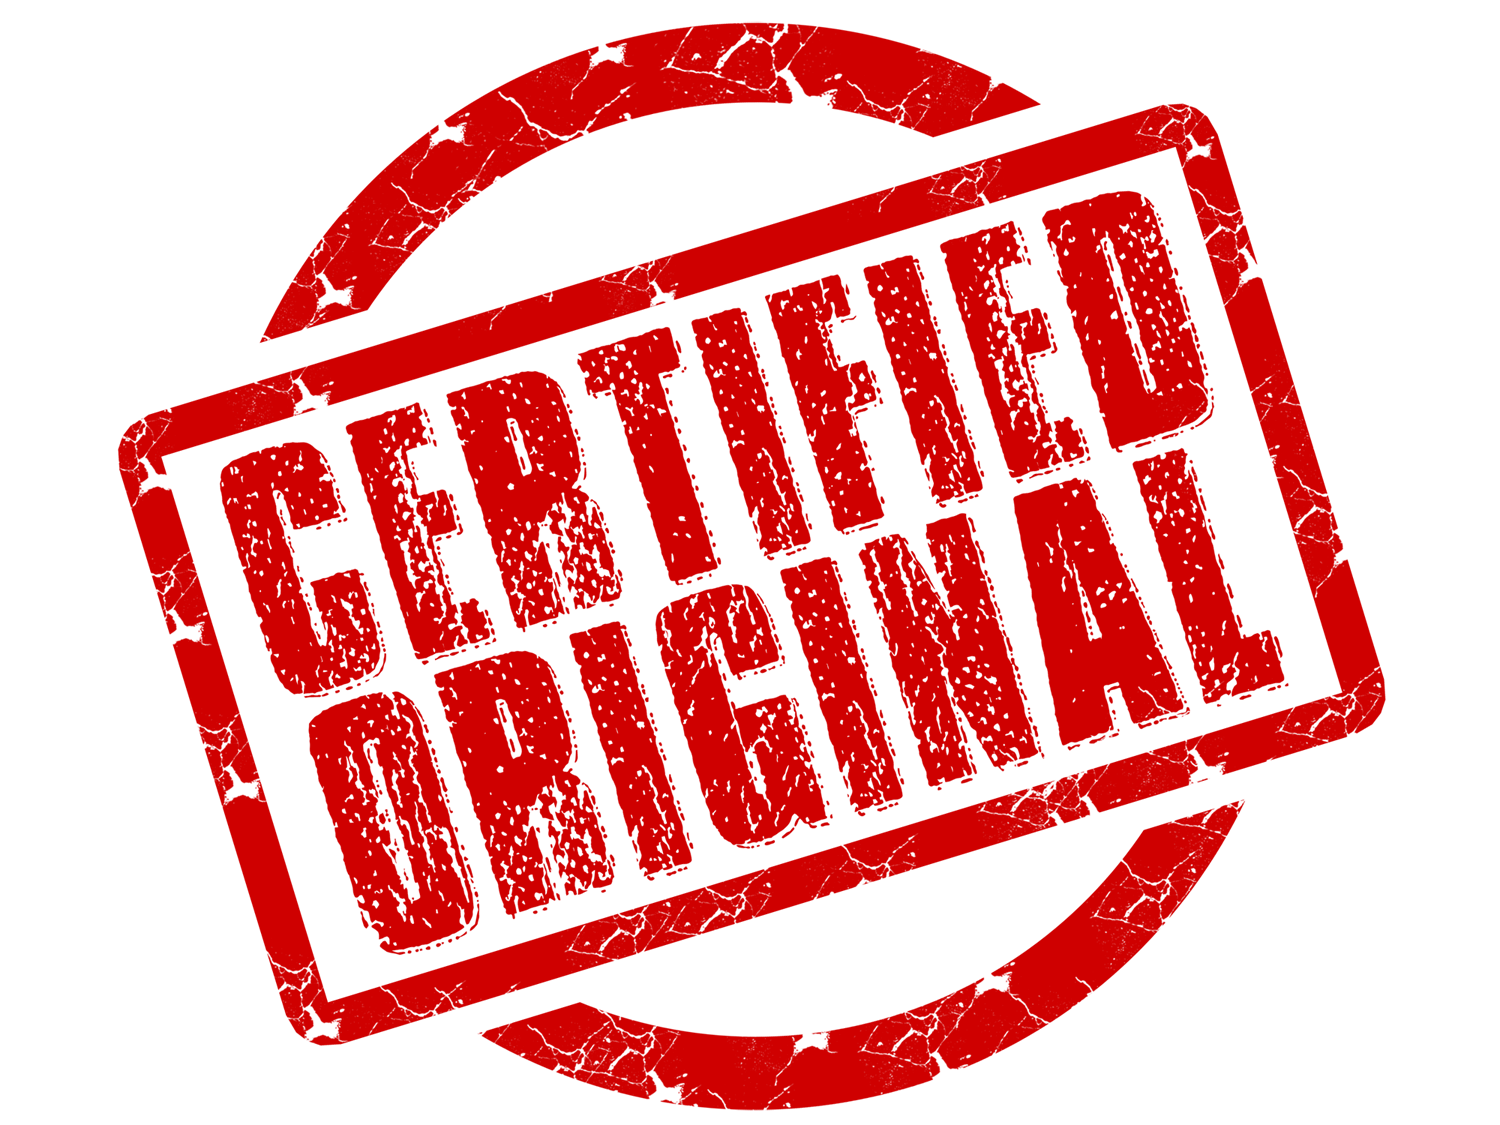 Stamp clipart certification. Certified original google search